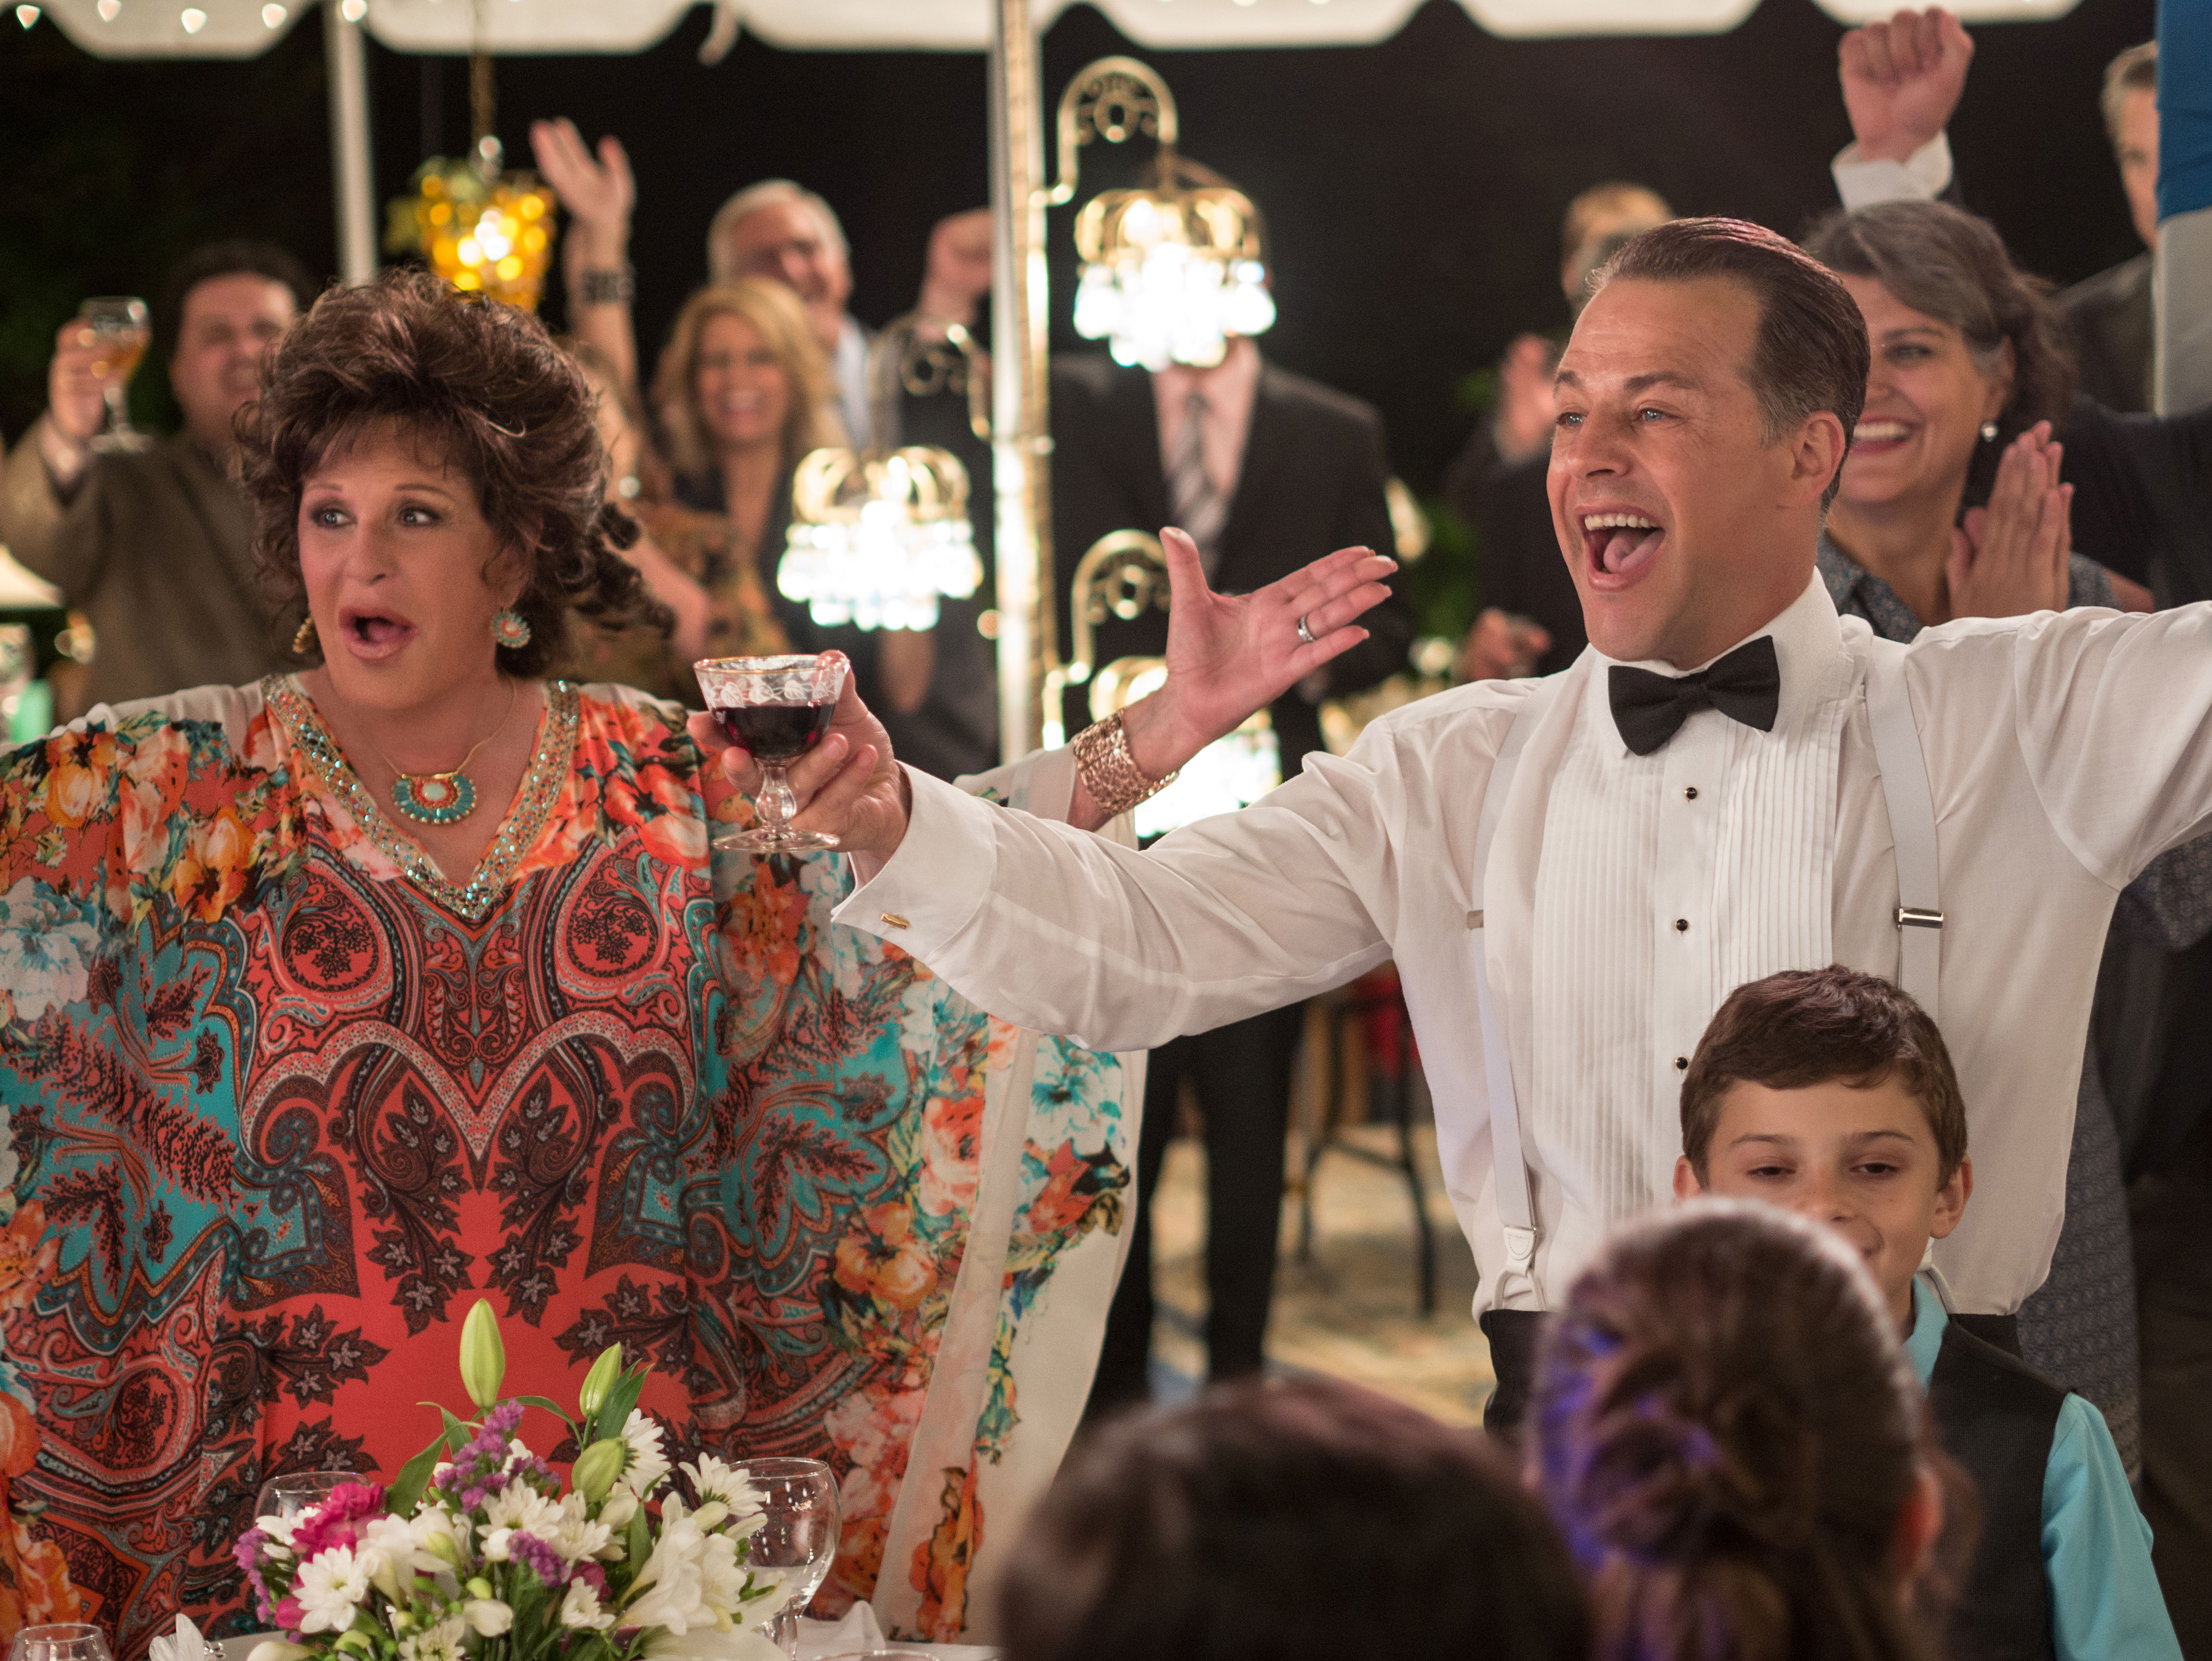 Opa! My Big Fat Greek Wedding 2 Preview and Giveaway! Rural Mom